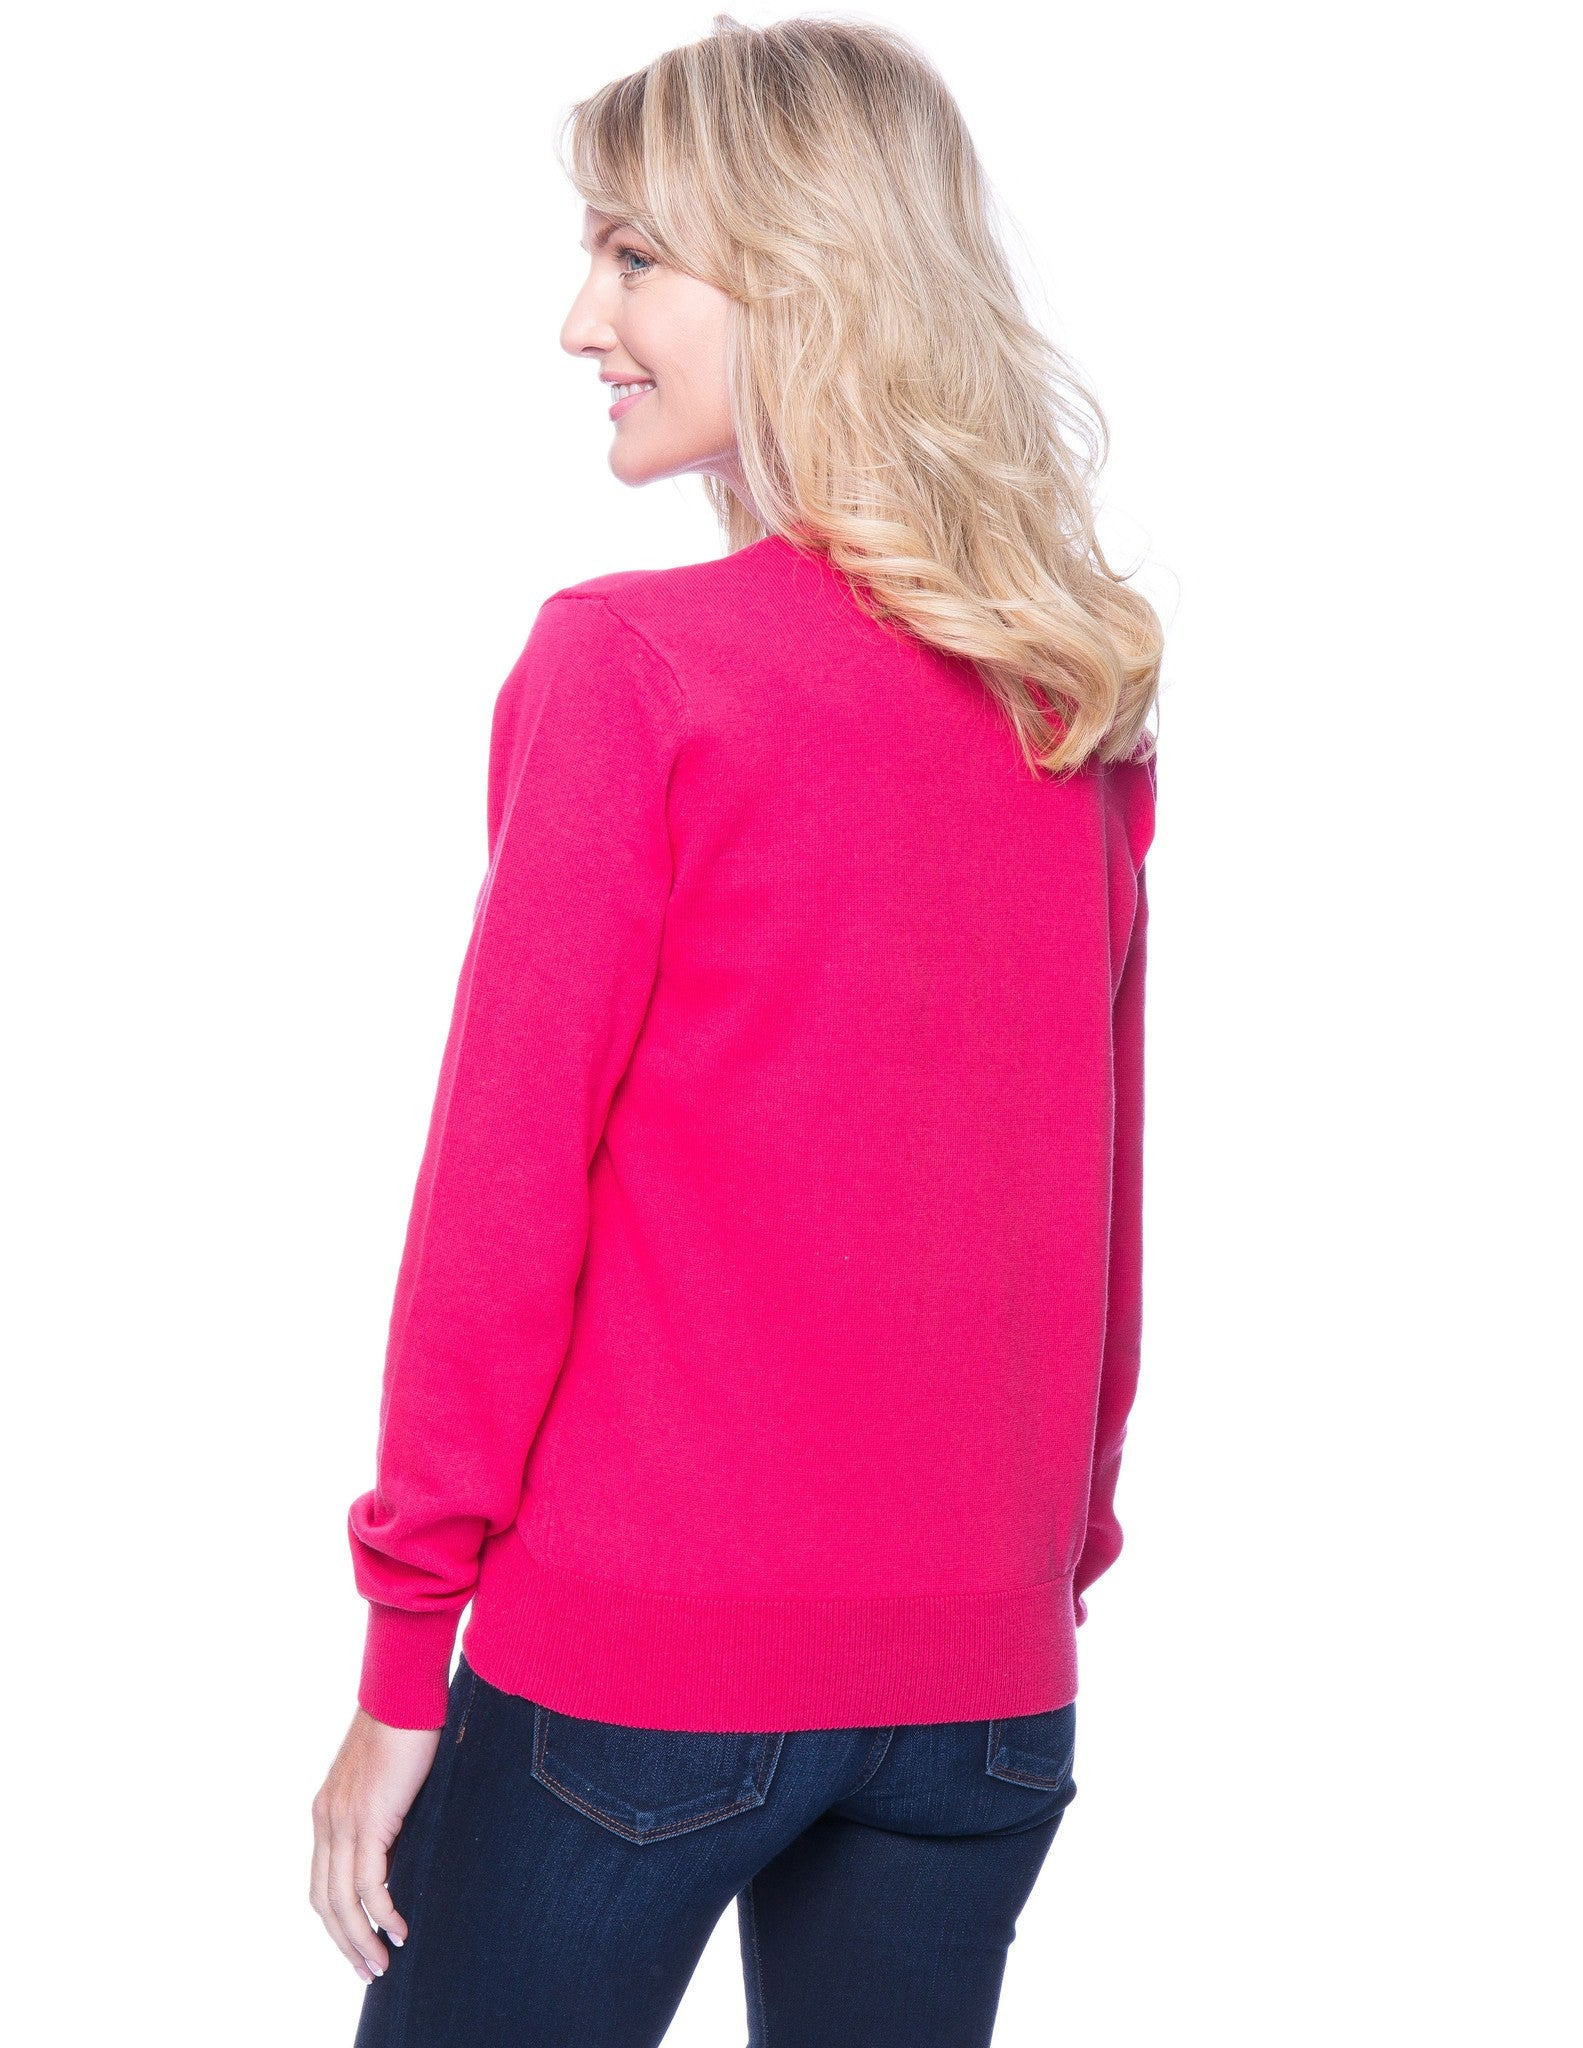 Tocco Reale Women's Premium Cotton Crew Neck Sweater - Fuchsia